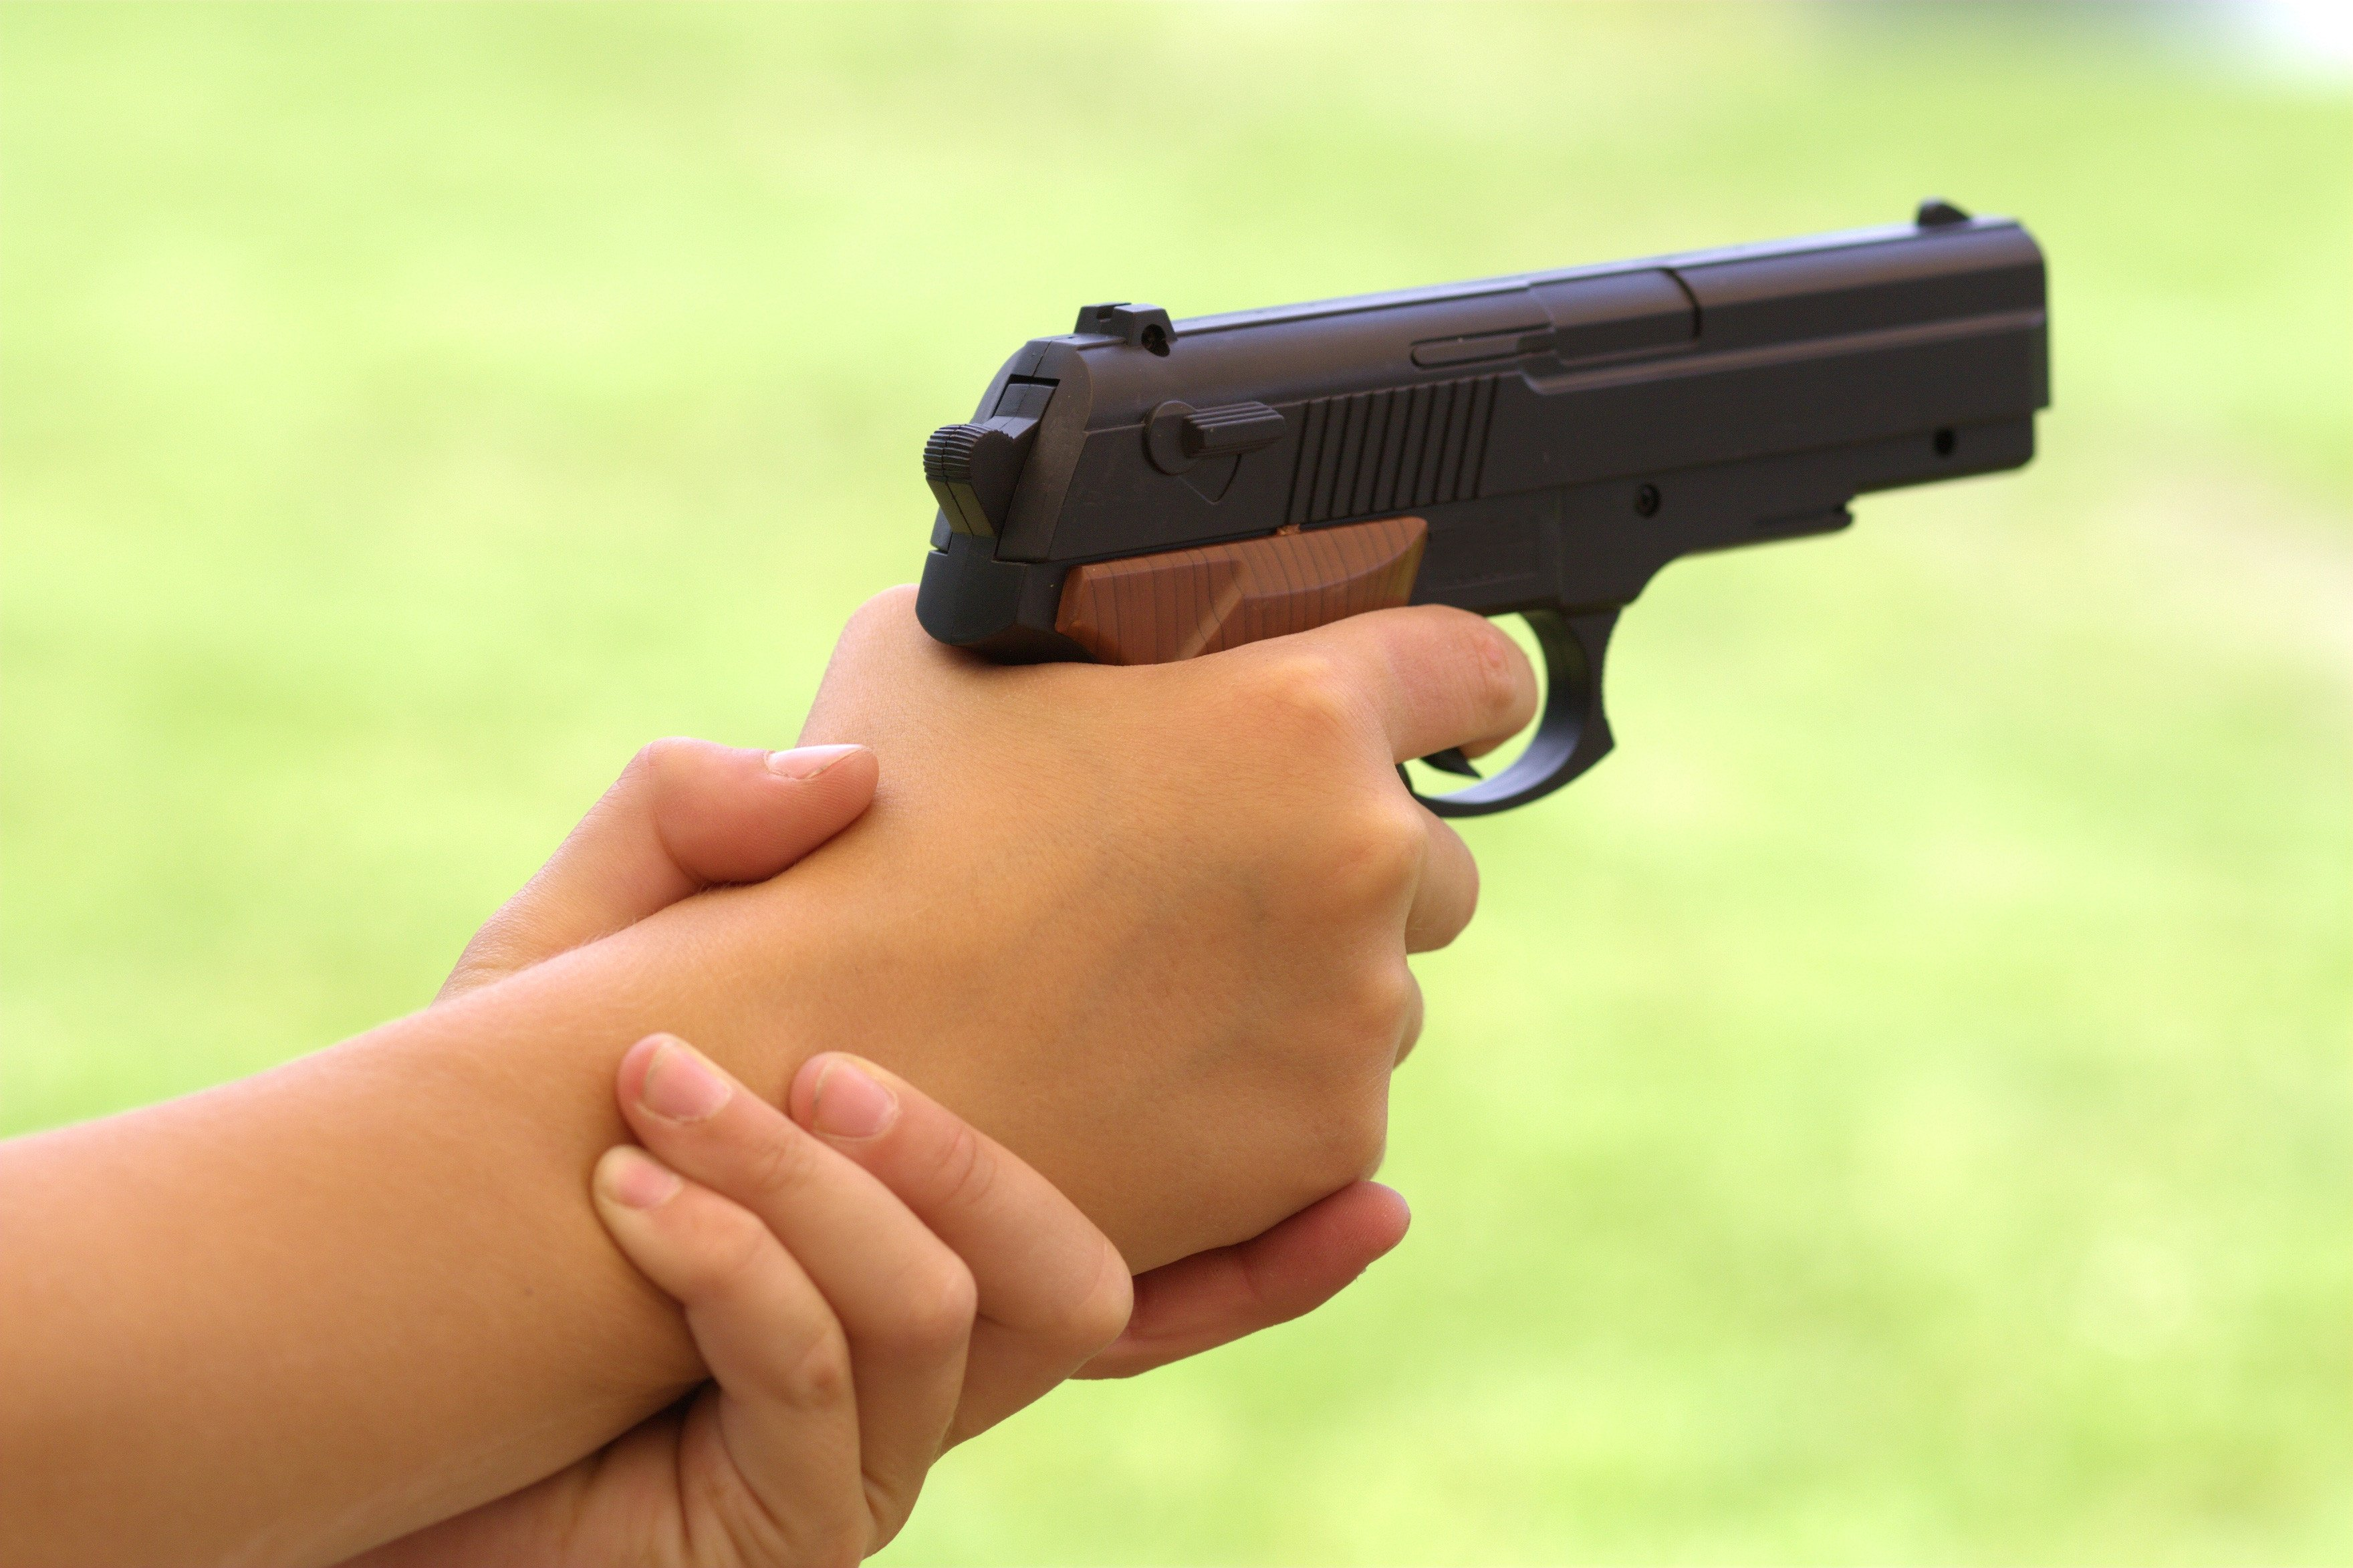 6-year-old boy accidentally shoots 7-year-old sister